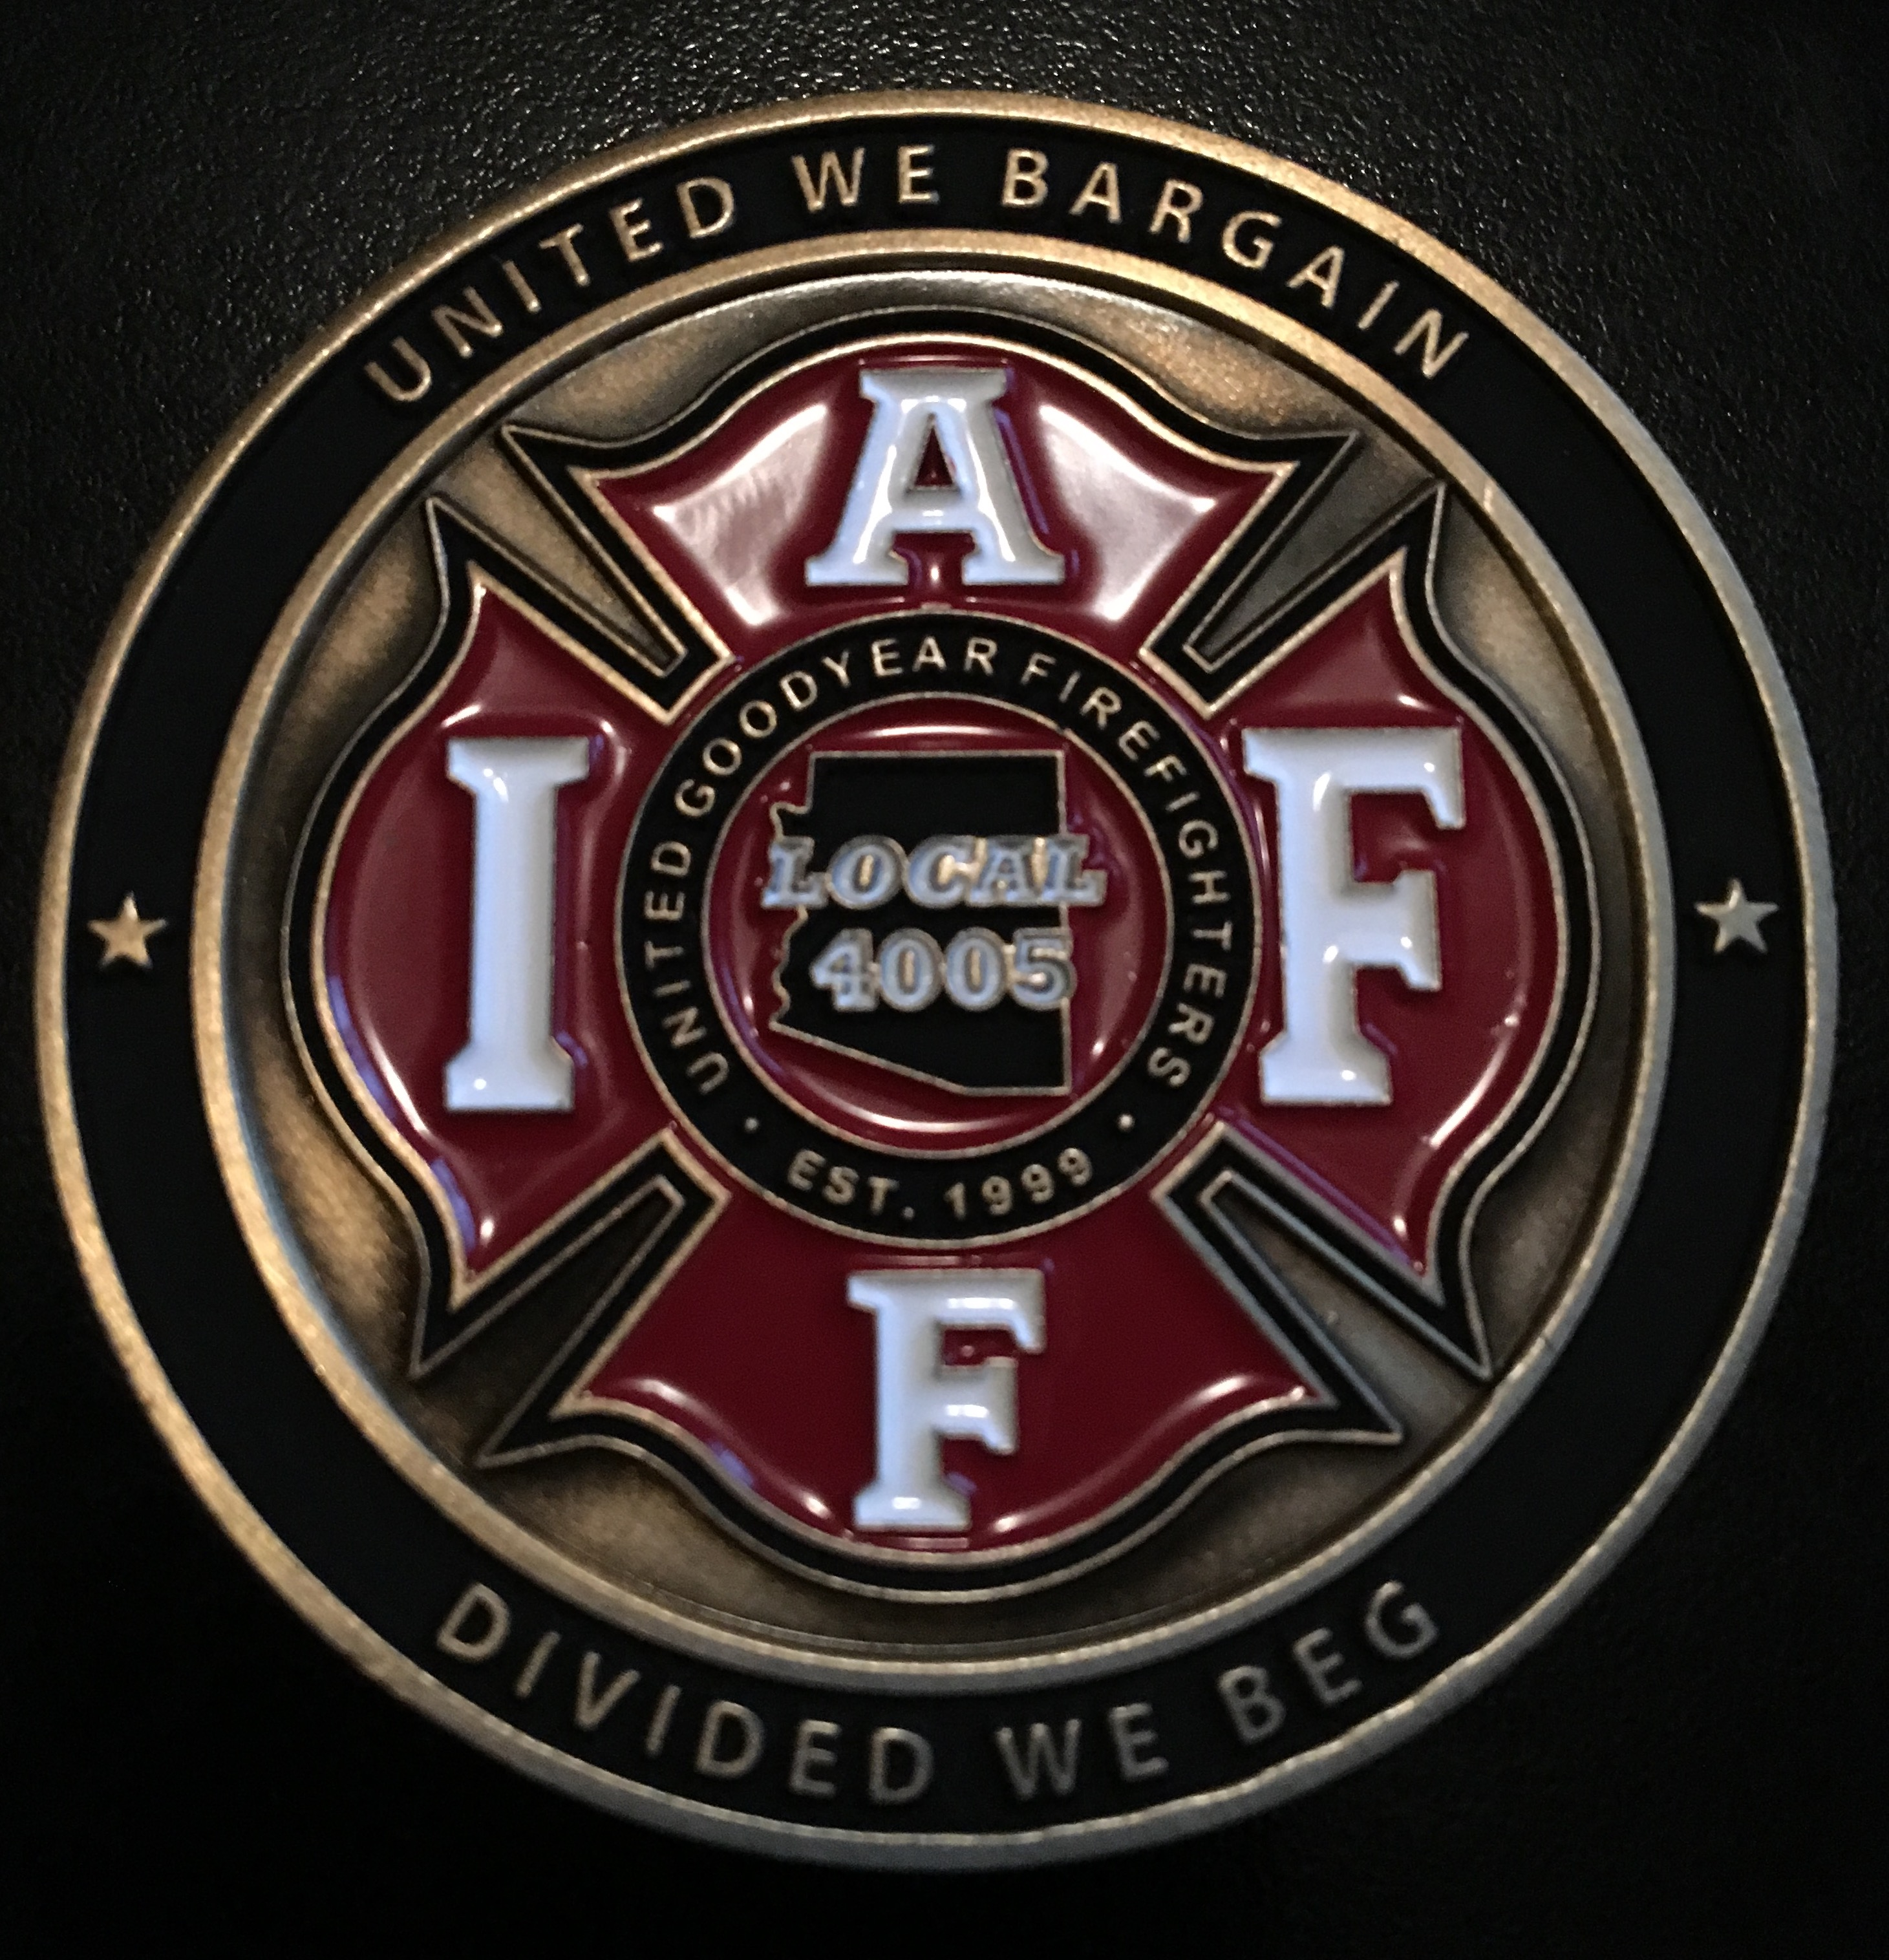 IAFF 4005  front